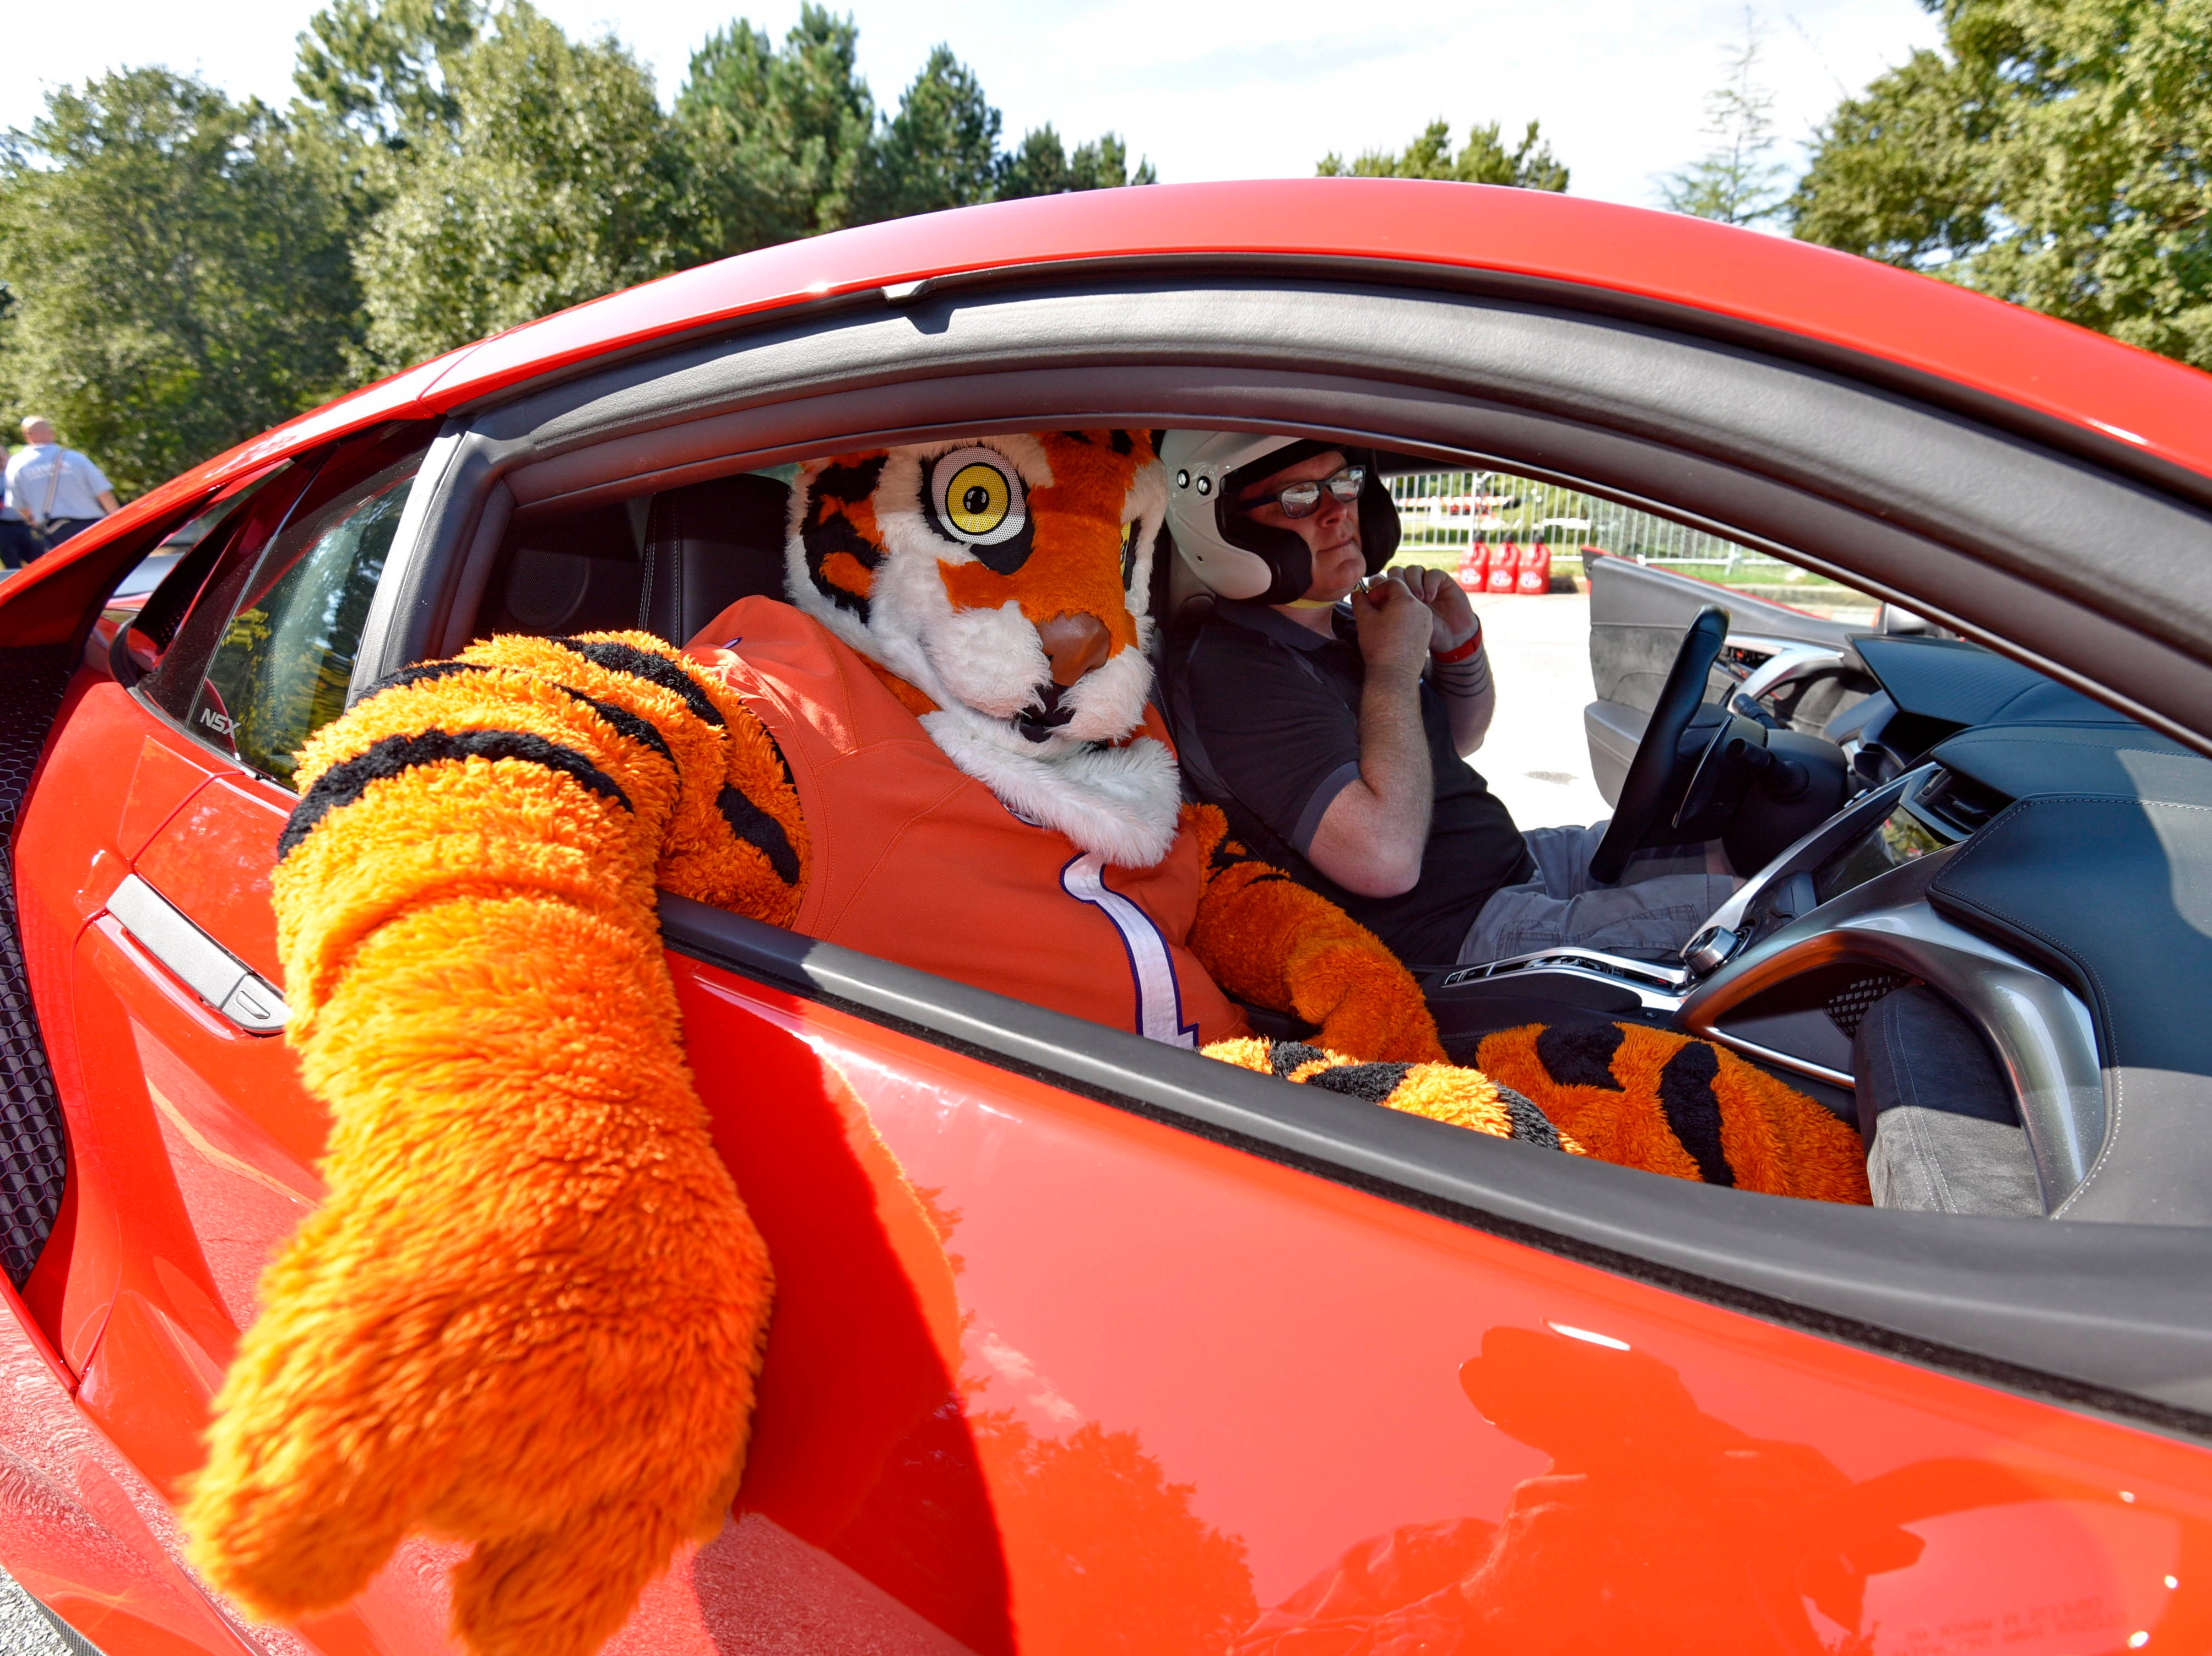 """Professional driver for Honda, Dennis Grisez takes Clemson mascot """"Tiger"""" out for a hot lap. CU-ICAR unveiled the new Deep Orange 9 rally car Saturday, October 6,  2018."""